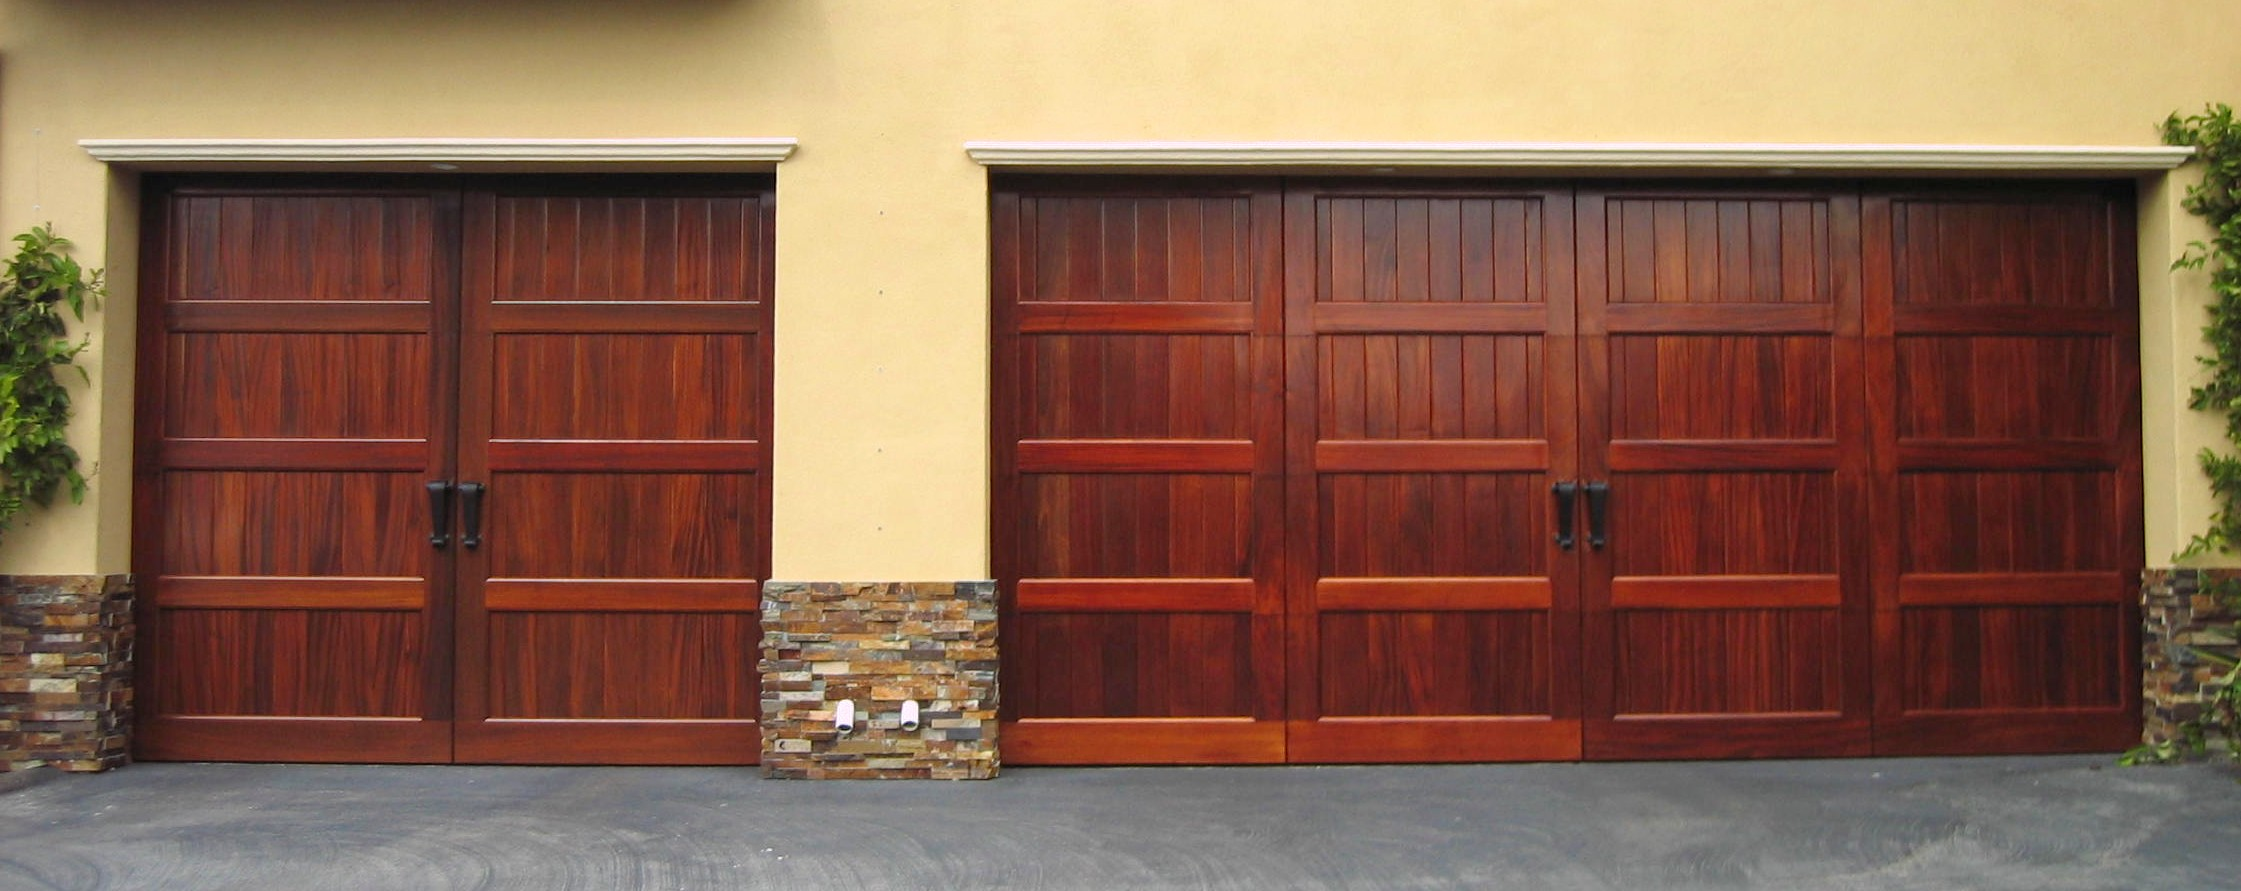 wood paint giani garage door for doors honey retail kit oak inc look products